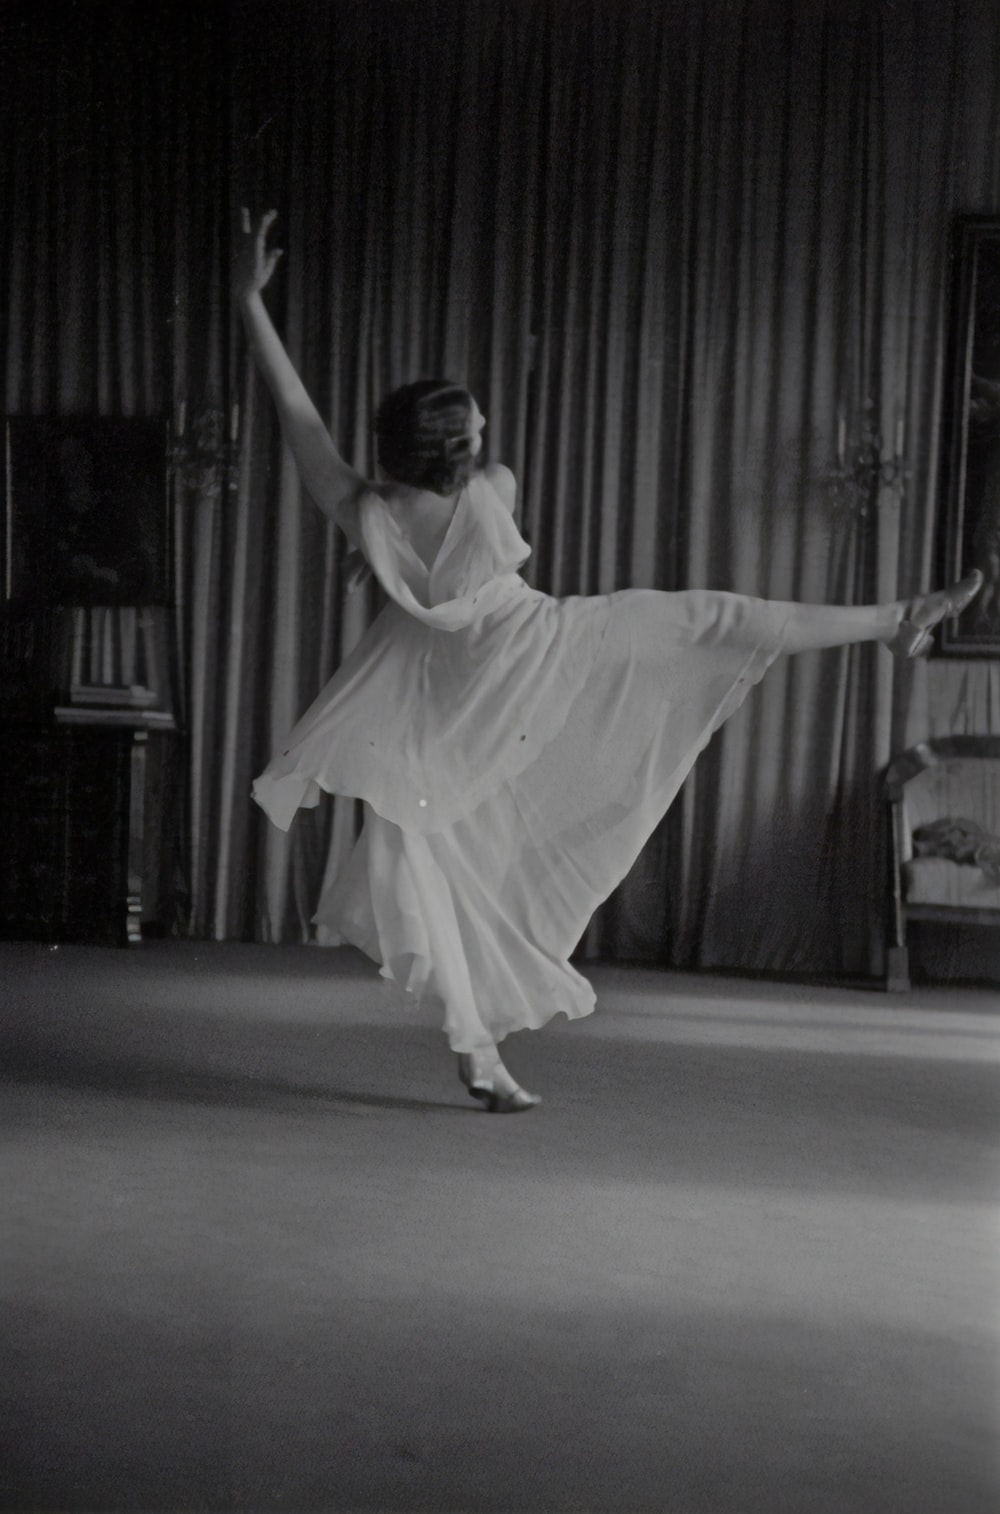 grayscale photo of woman dancing near curtains